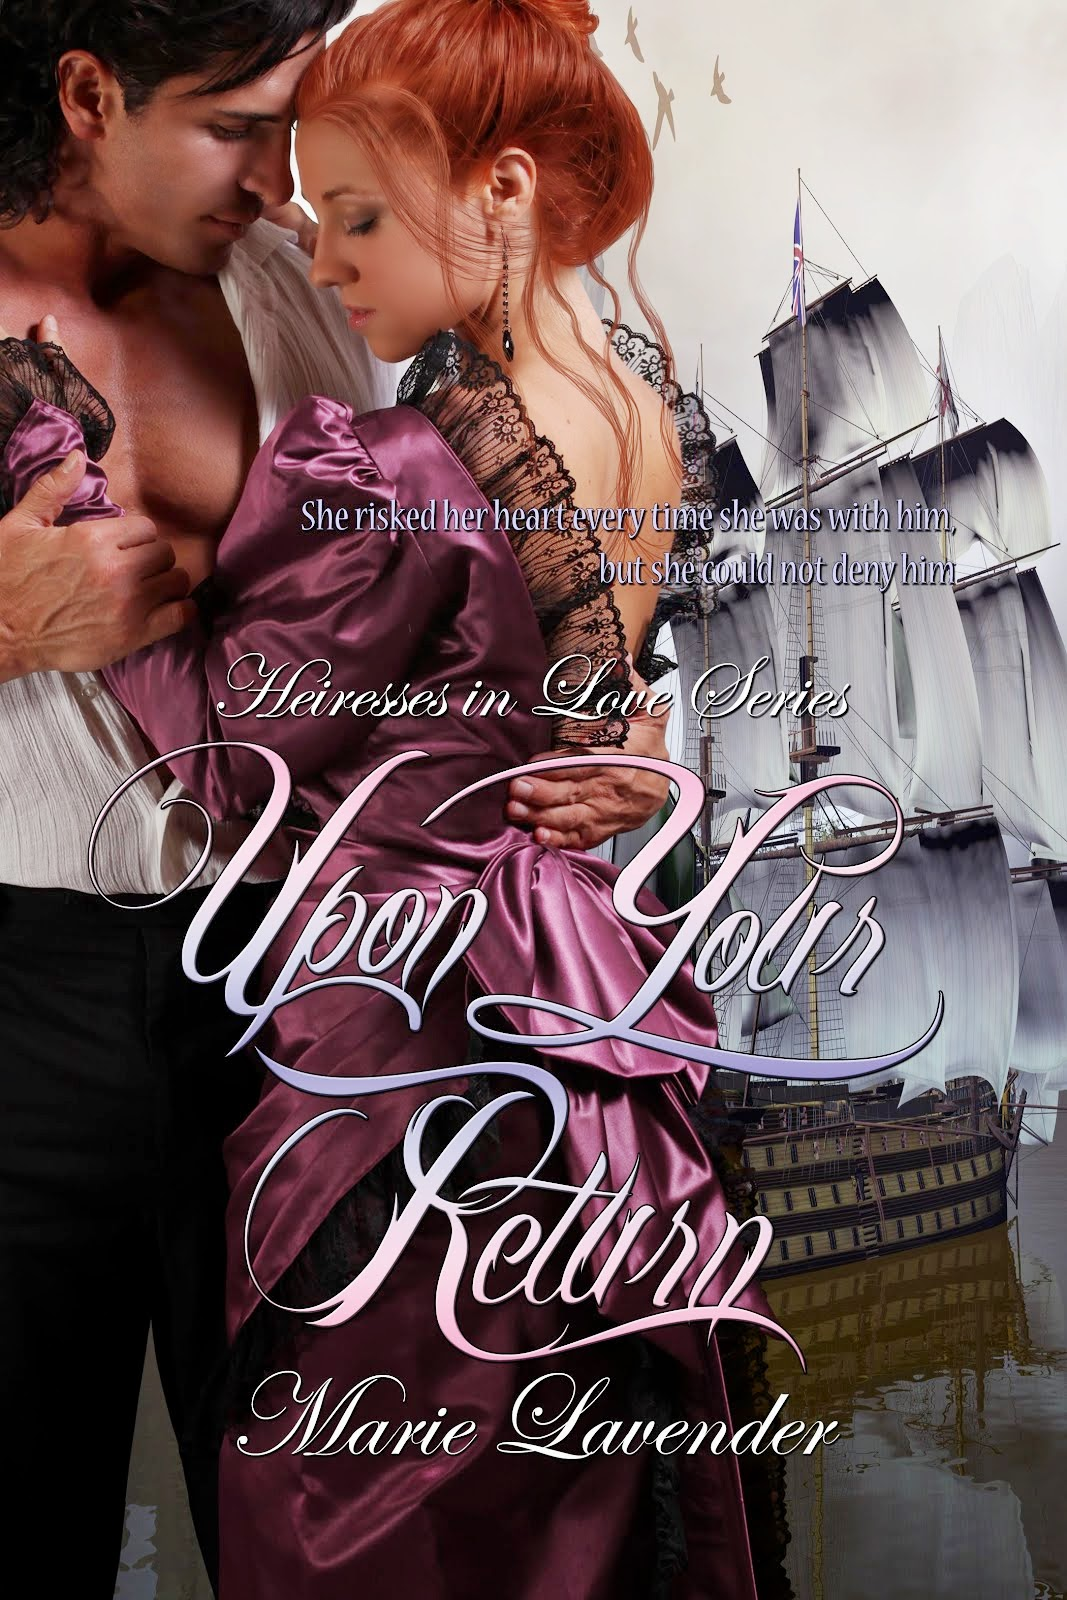 http://www.amazon.com/Upon-Your-Return-Marie-Lavender-ebook/dp/B00I0D9LQ8/ref=cm_rdp_product